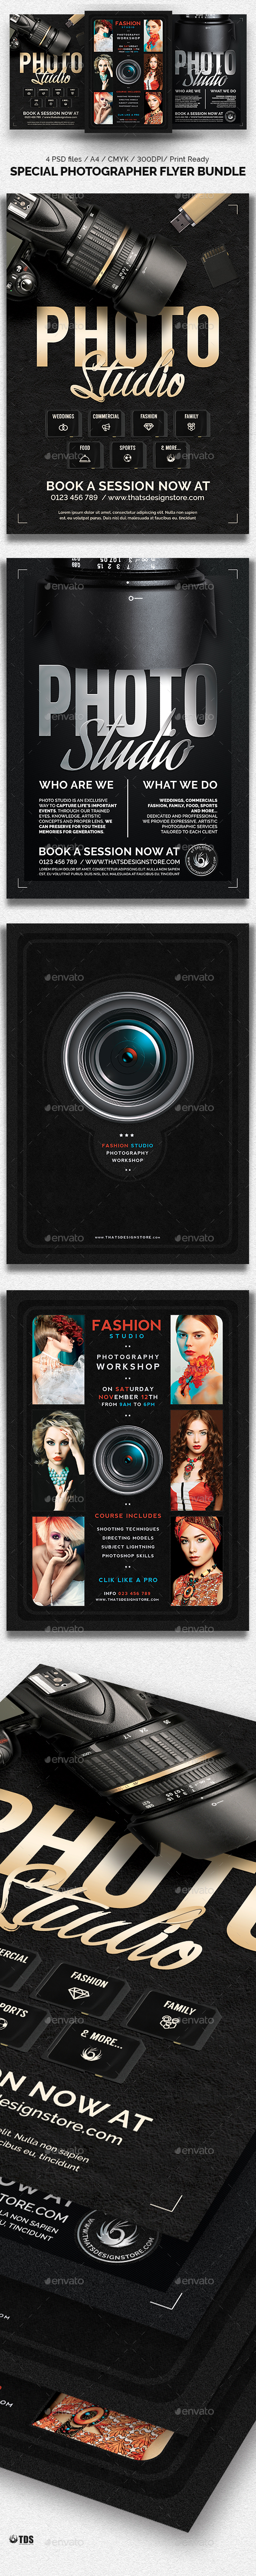 Special Photographer Flyer Bundle - Corporate Flyers